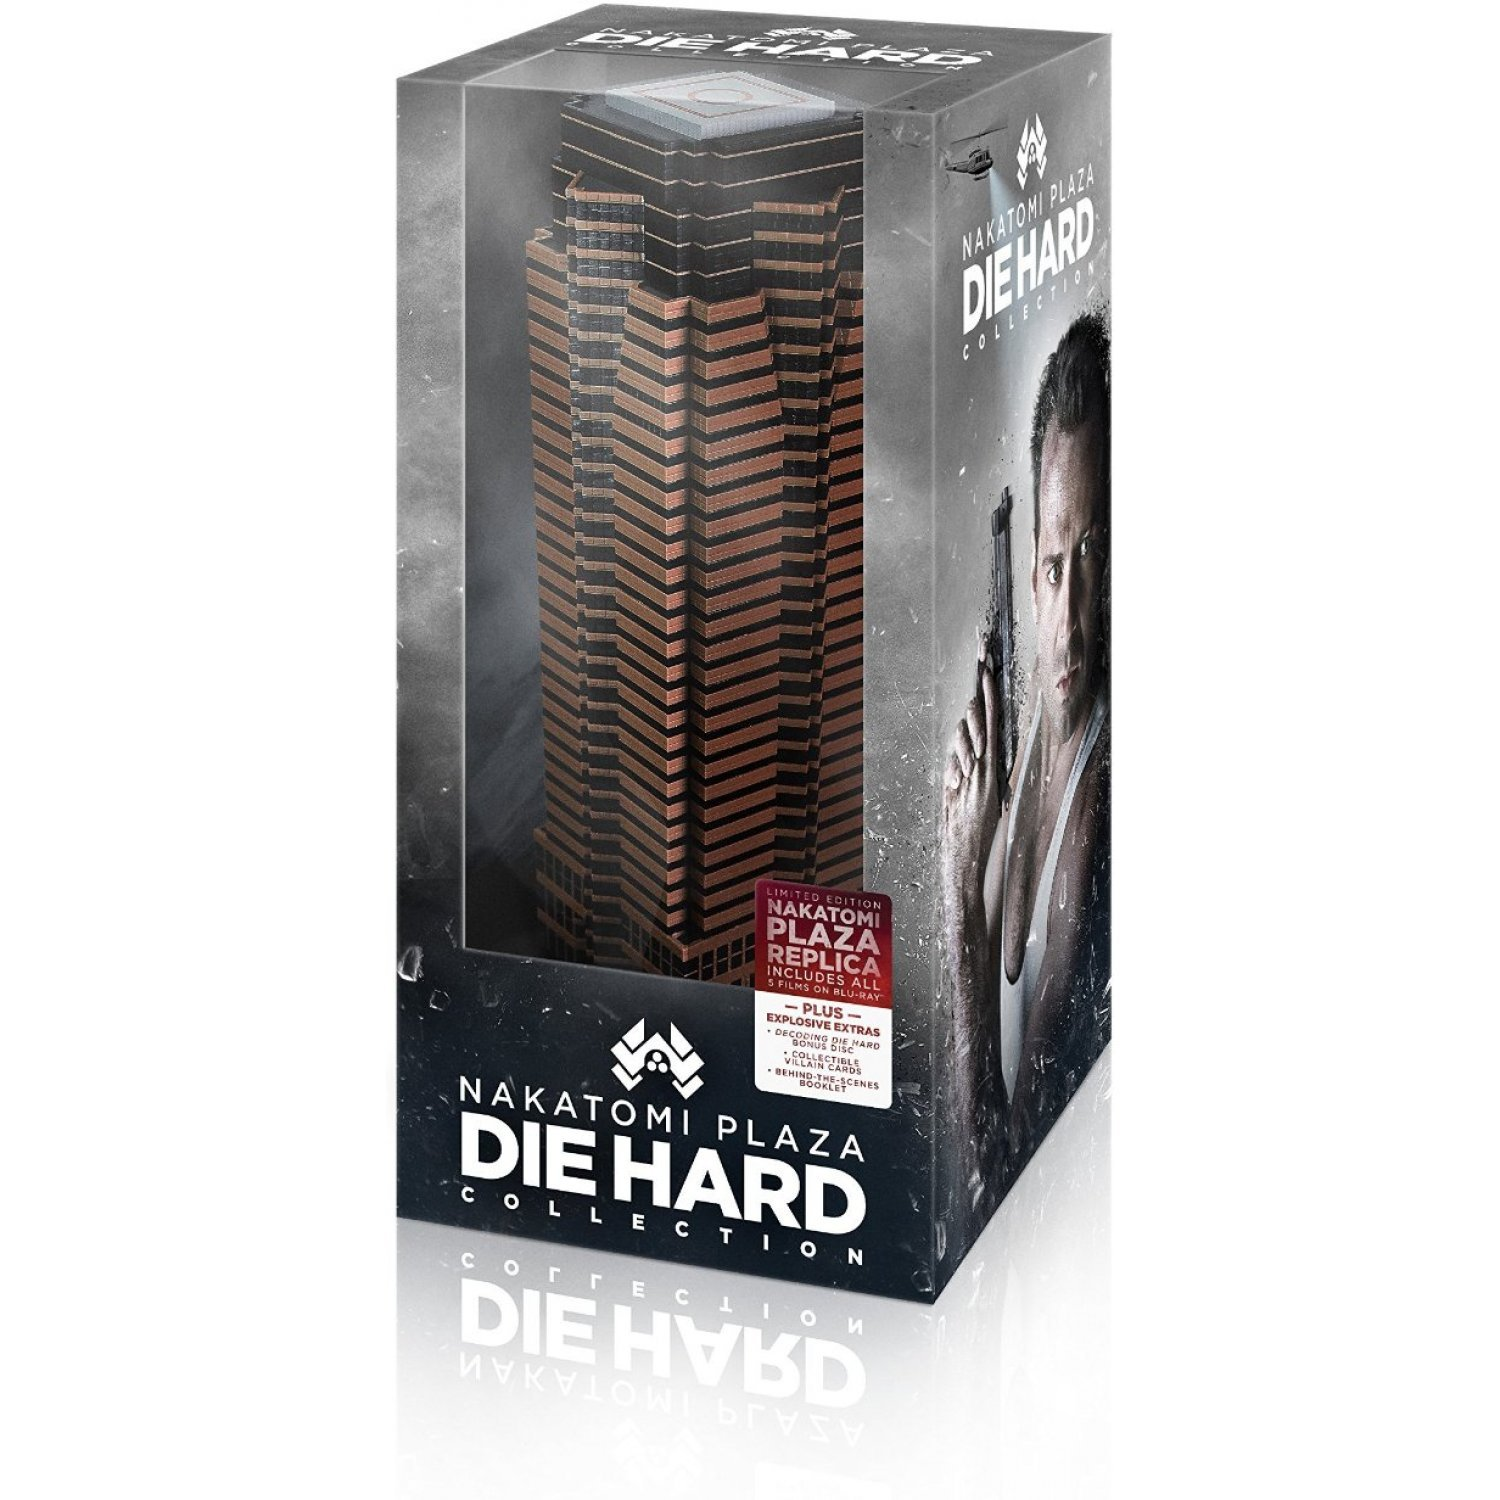 Die Collection nakatomi plaza die limited edition collection